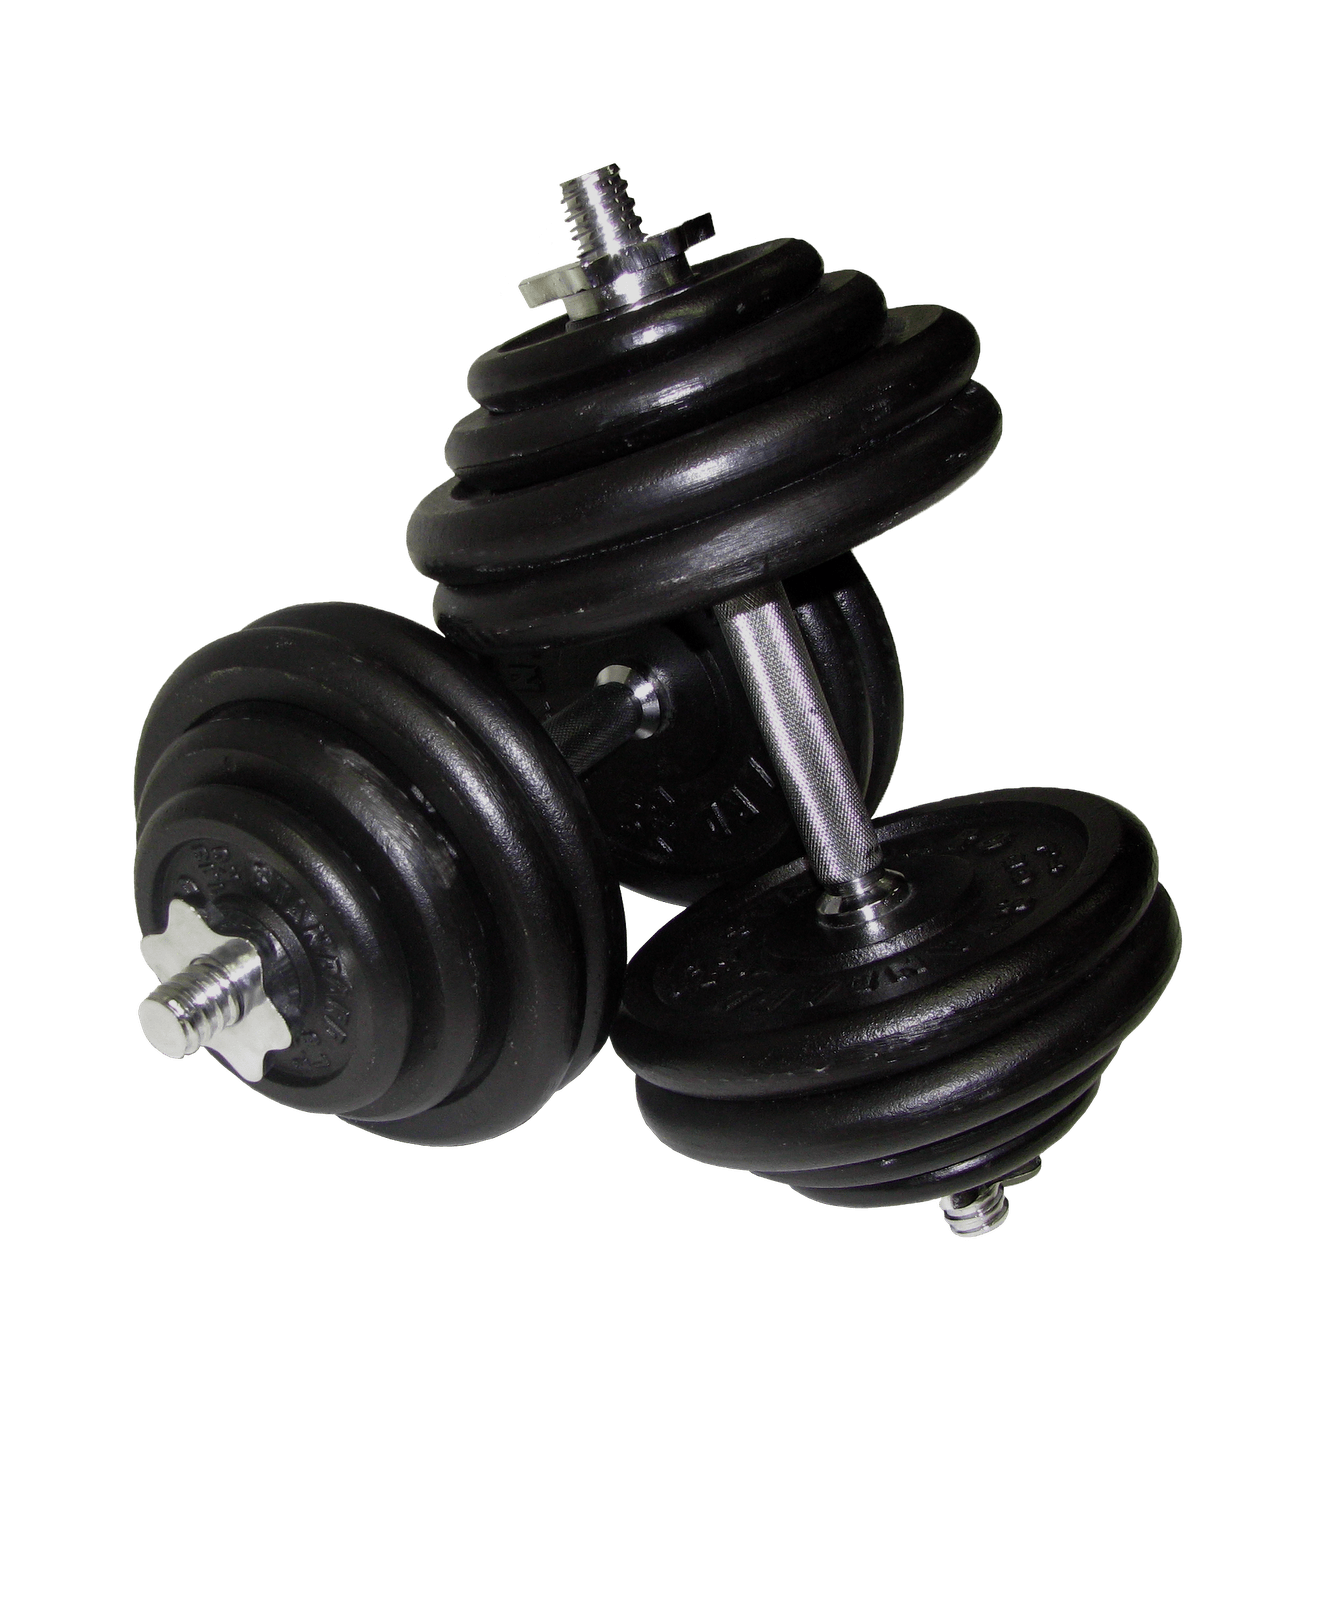 Dumbbells black transparent png. Dumbbell clipart exersise